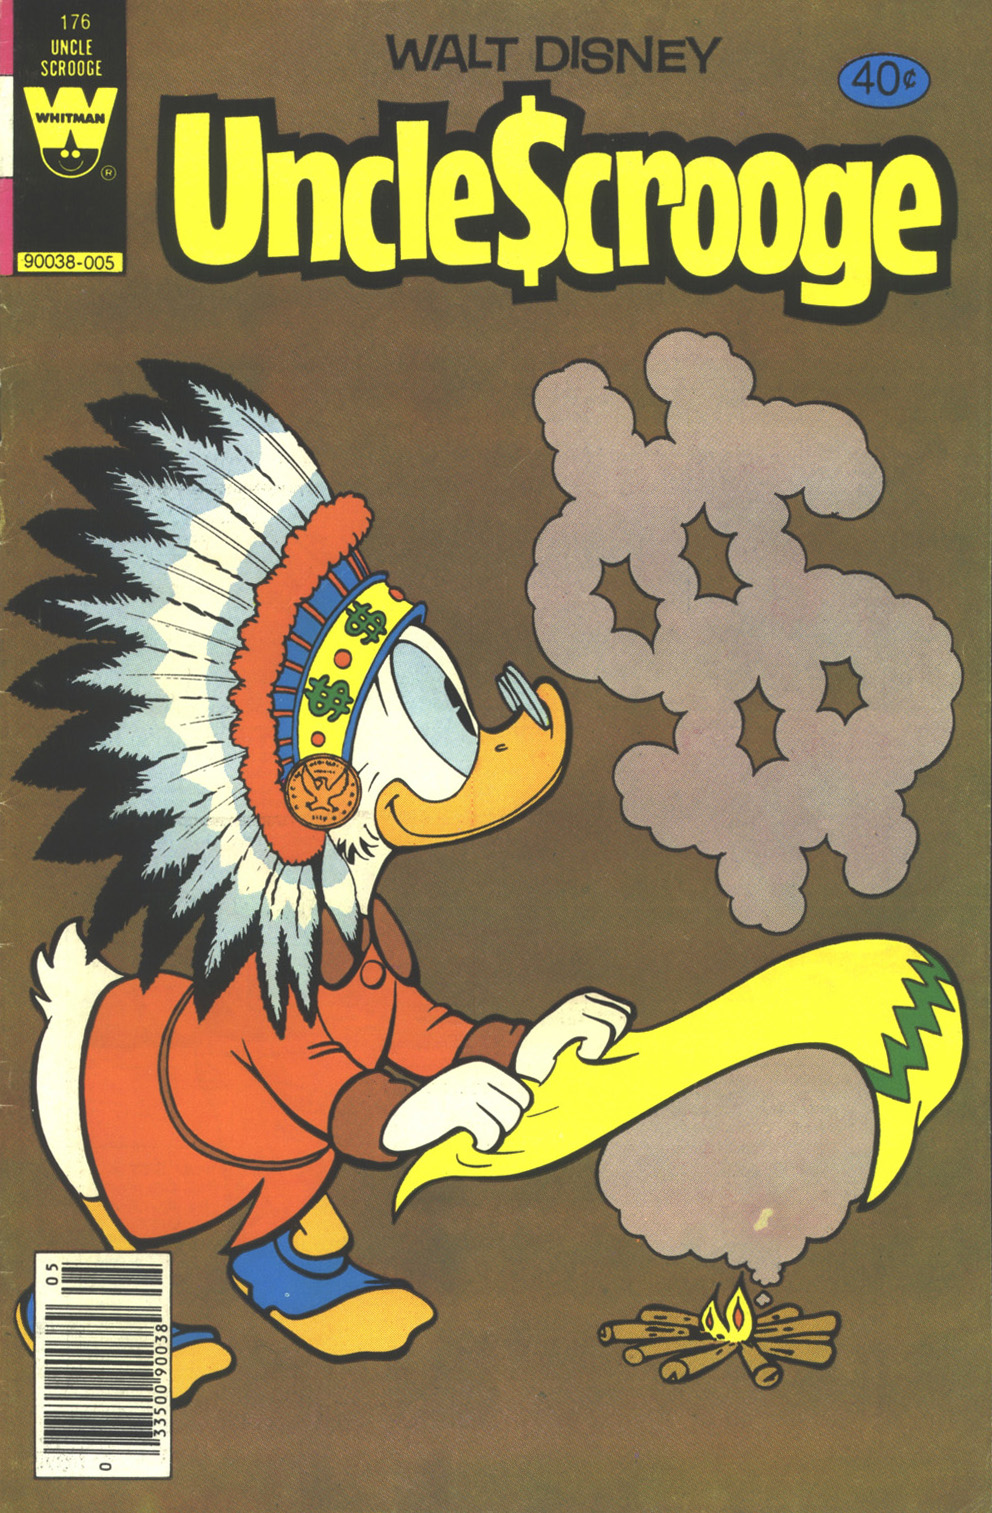 Read online Uncle Scrooge (1953) comic -  Issue #176 - 1